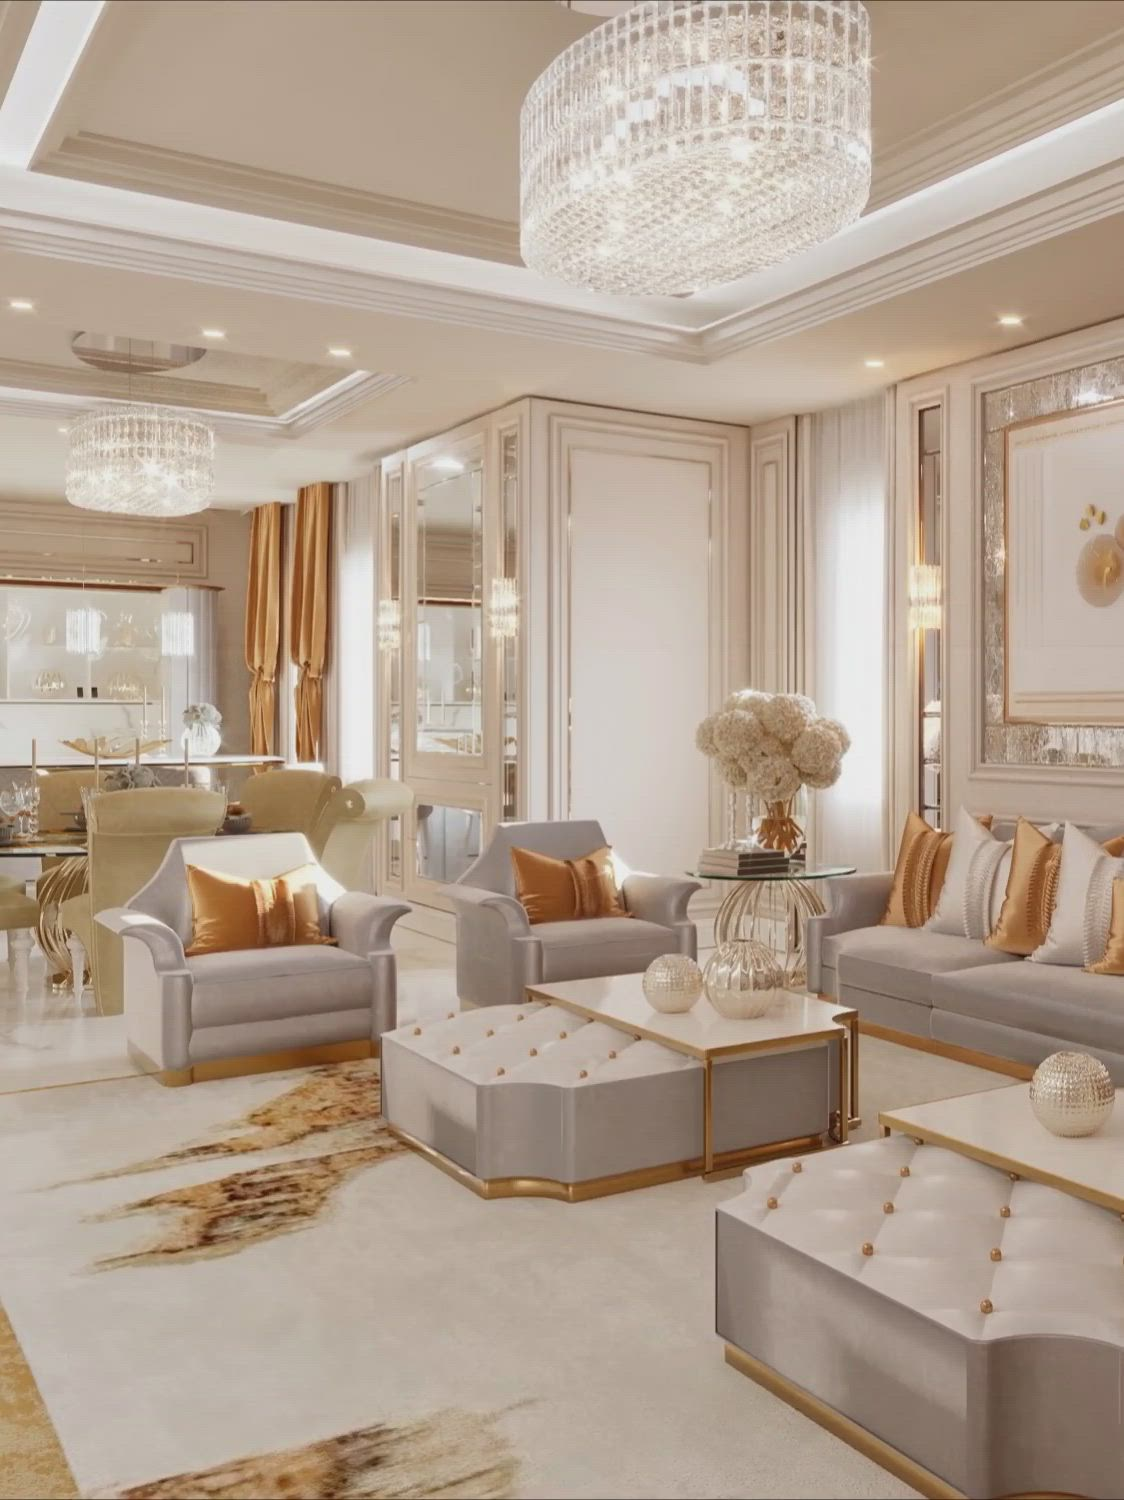 Contemporary Luxury Dream Family Living Room Interior Design Videos For Your Inspiration In 2020 Big Living Room Design Luxury Living Room Design Big Living R